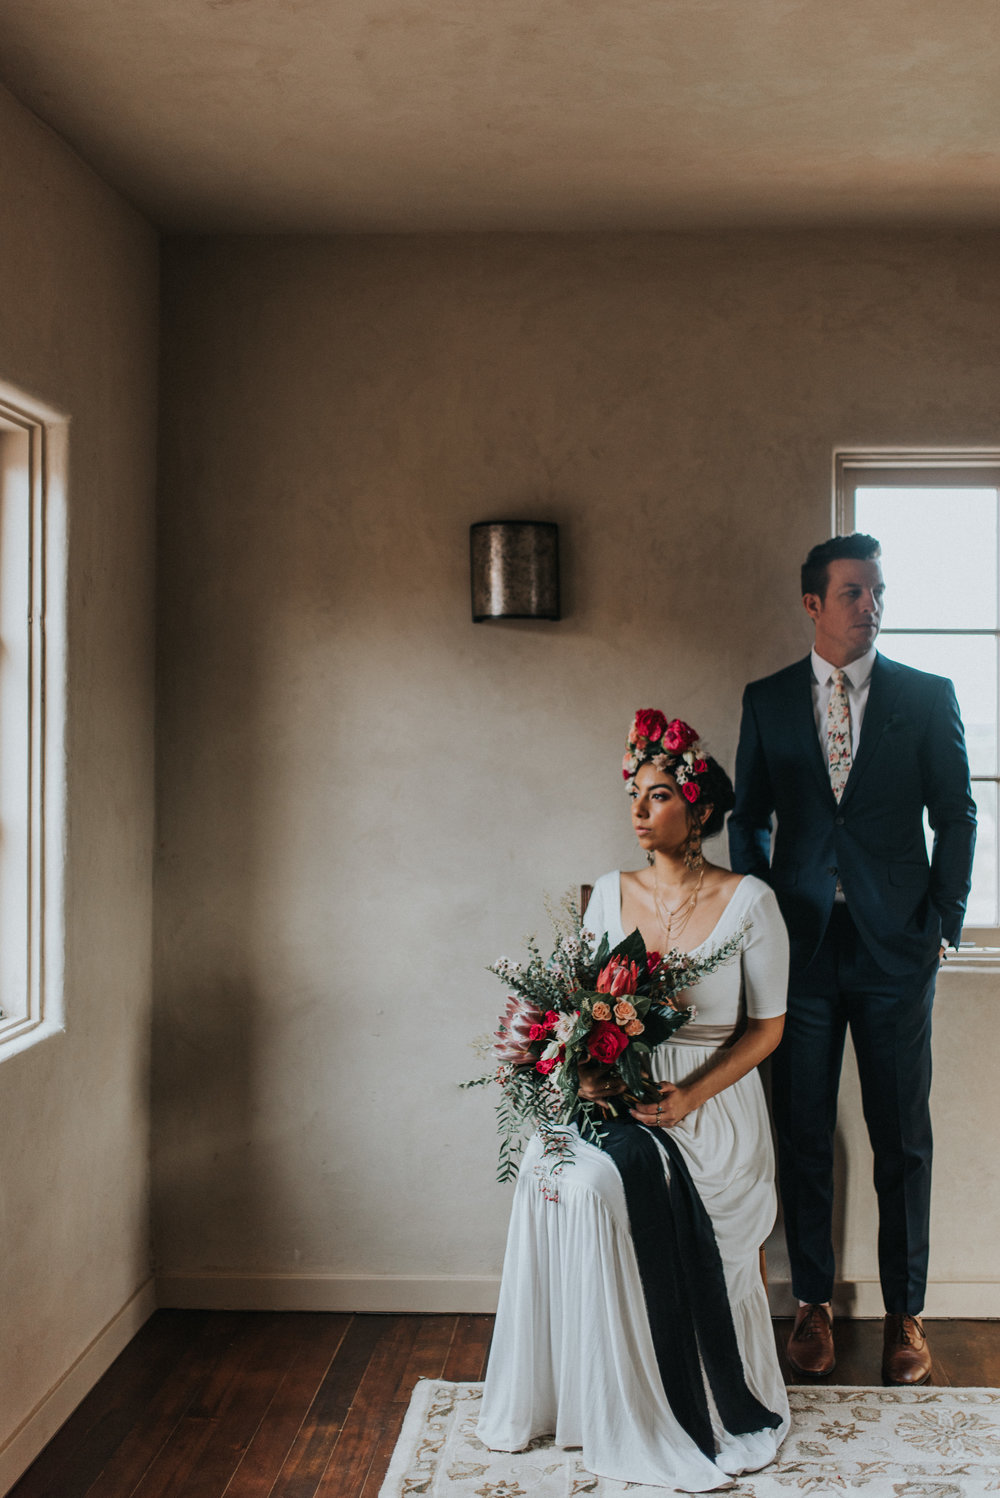 frida + Diego - styling & floral design